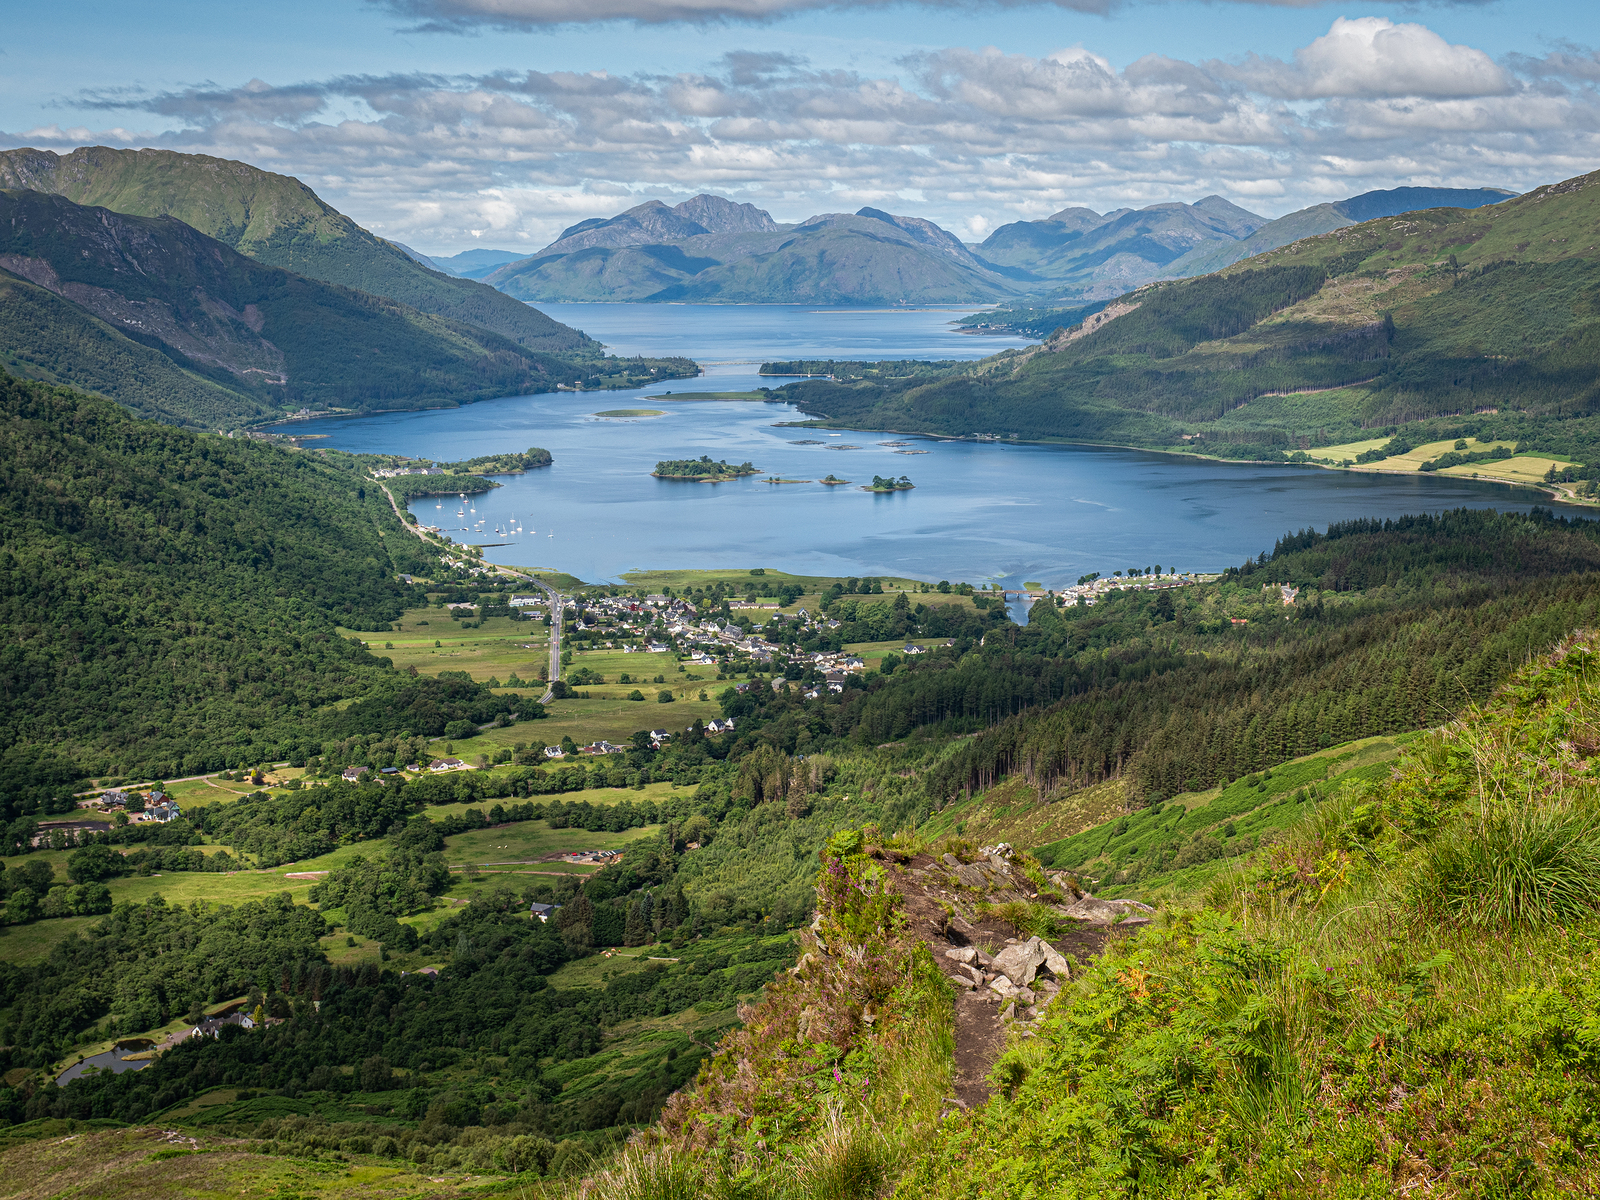 The Pap of Glencoe Scottish Highlands, a stunning view for your tour around Scotland